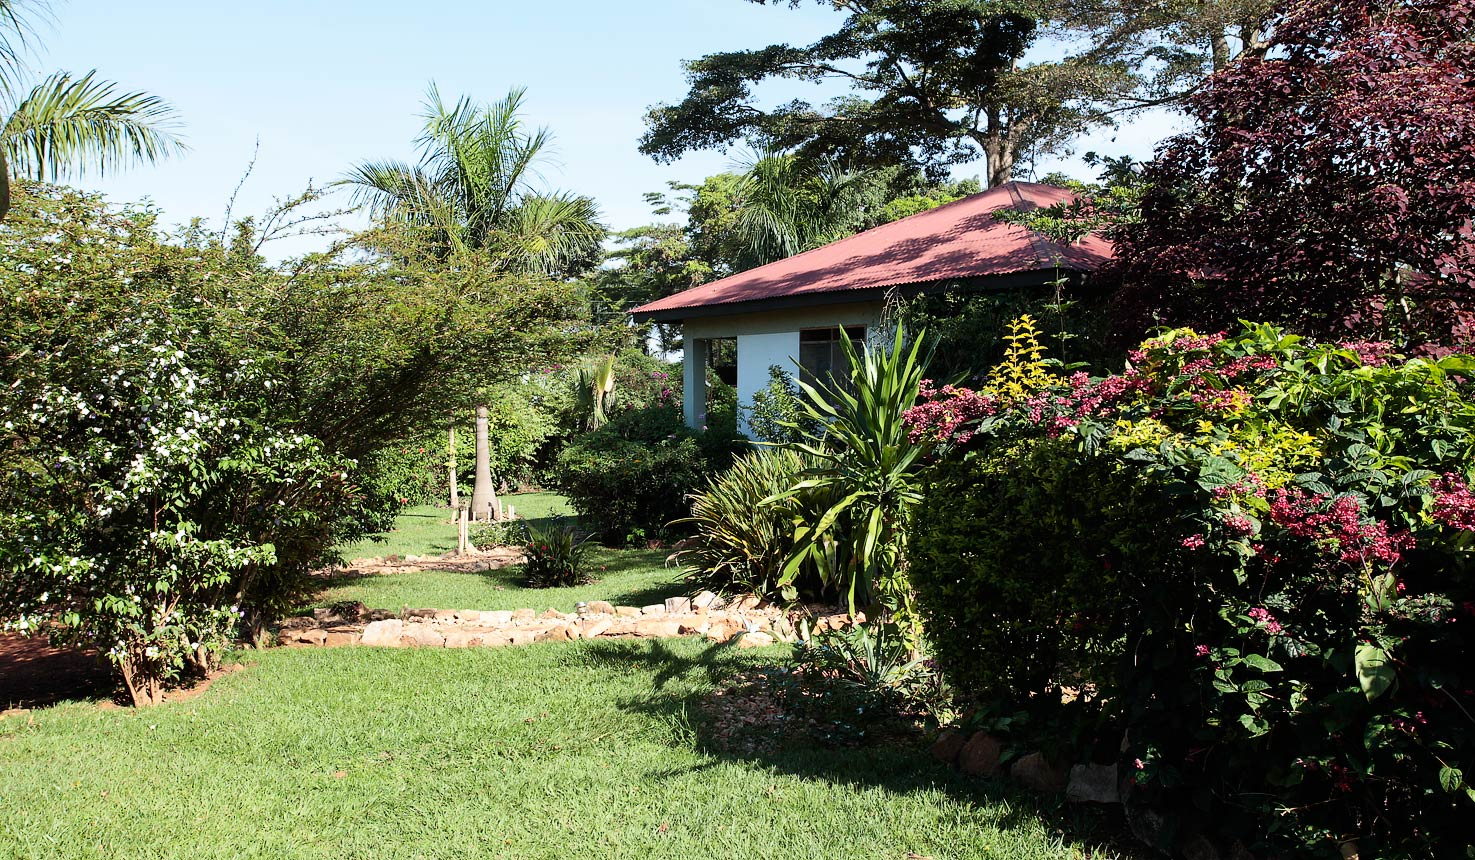 Gately Inn Entebbe Lodge Cottages - A natural rustic Feel